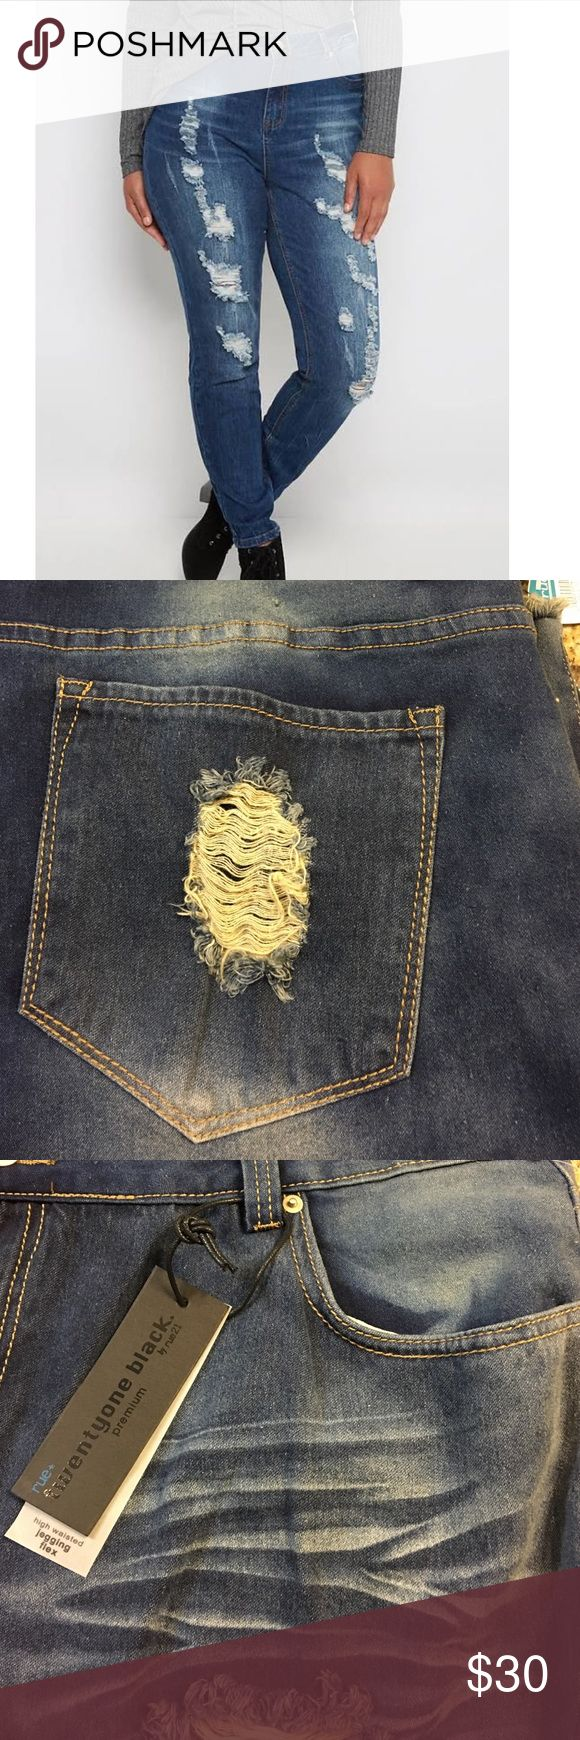 Rue 21 plus high waisted jegging flex New with tags. Keeping it casual has never been easier with this stylish jegging, fashioned with freedom flex denim in a vintage wash. It's cut with a flattering high waist build and heavy rips. Super fitted through leg. Zipped cuffs. Stretchy. Standard length. 73% cotton. 25% polyester 2% spandex.  Twentyone black edition Rue 21 Jeans Skinny